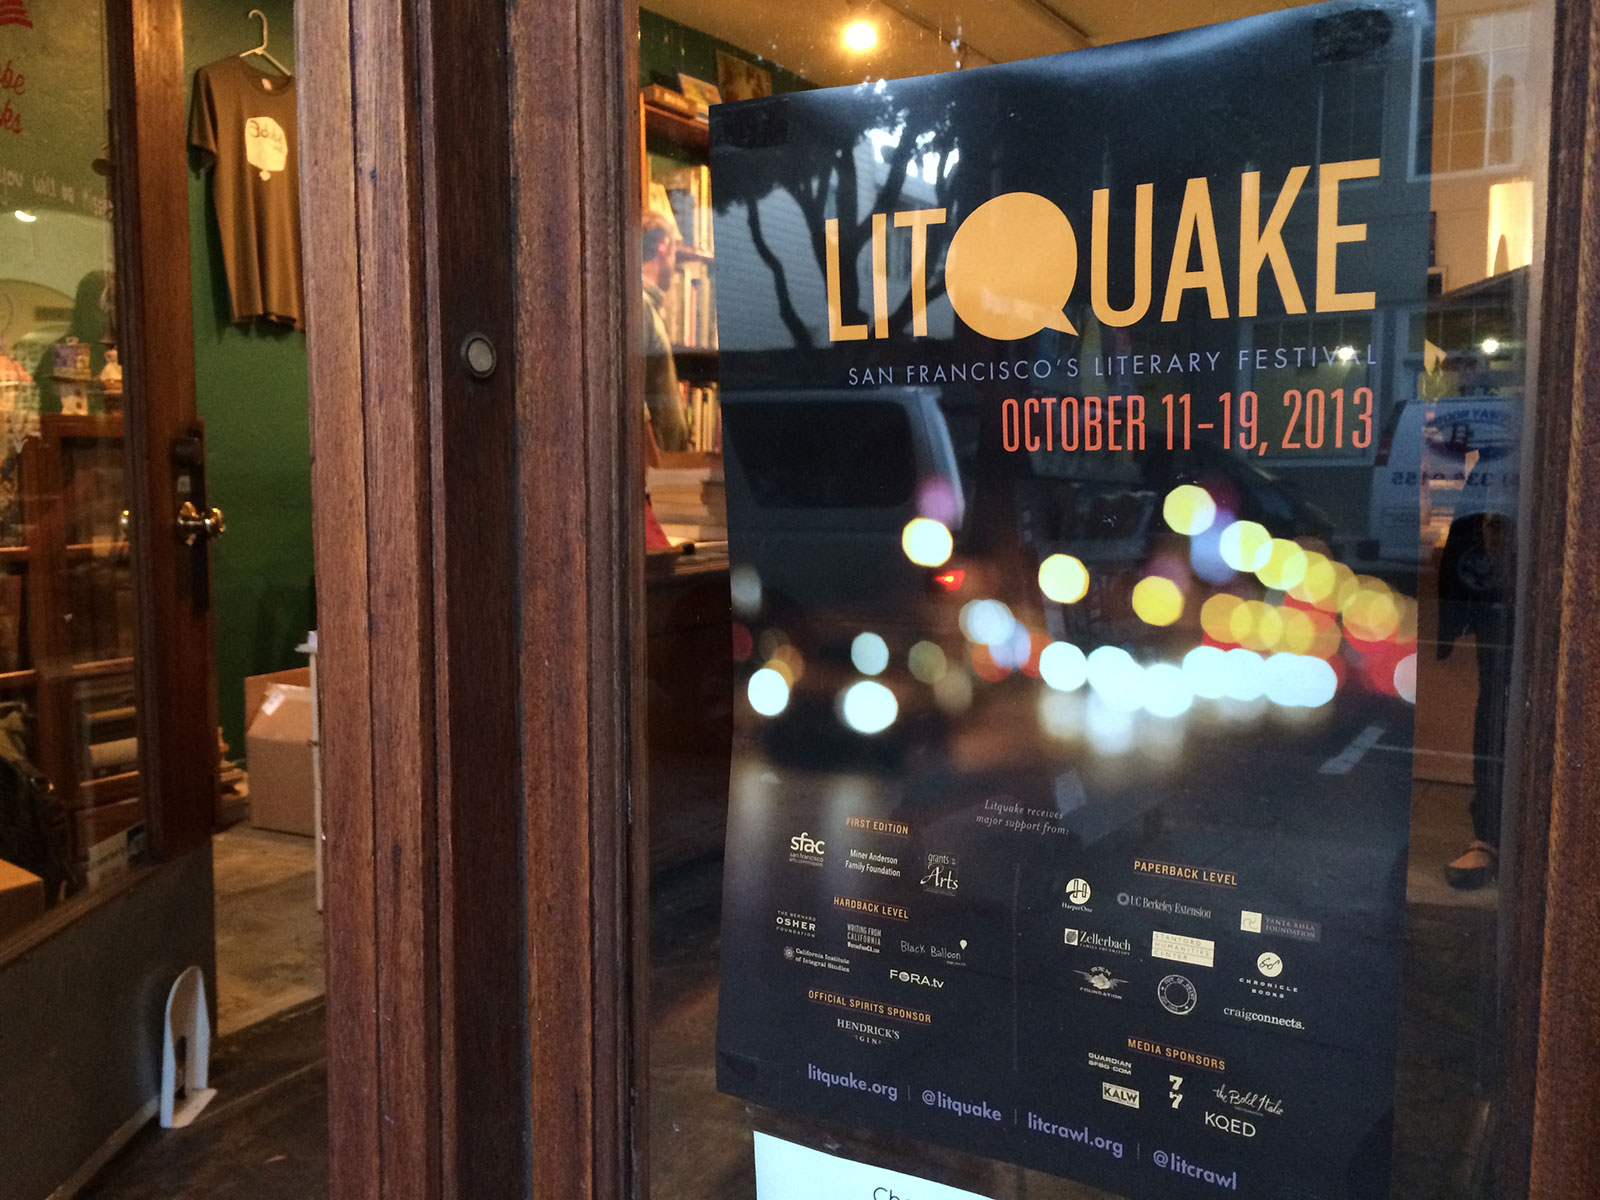 Litquake Event Relocates to SF Mission's Alamo Drafthouse